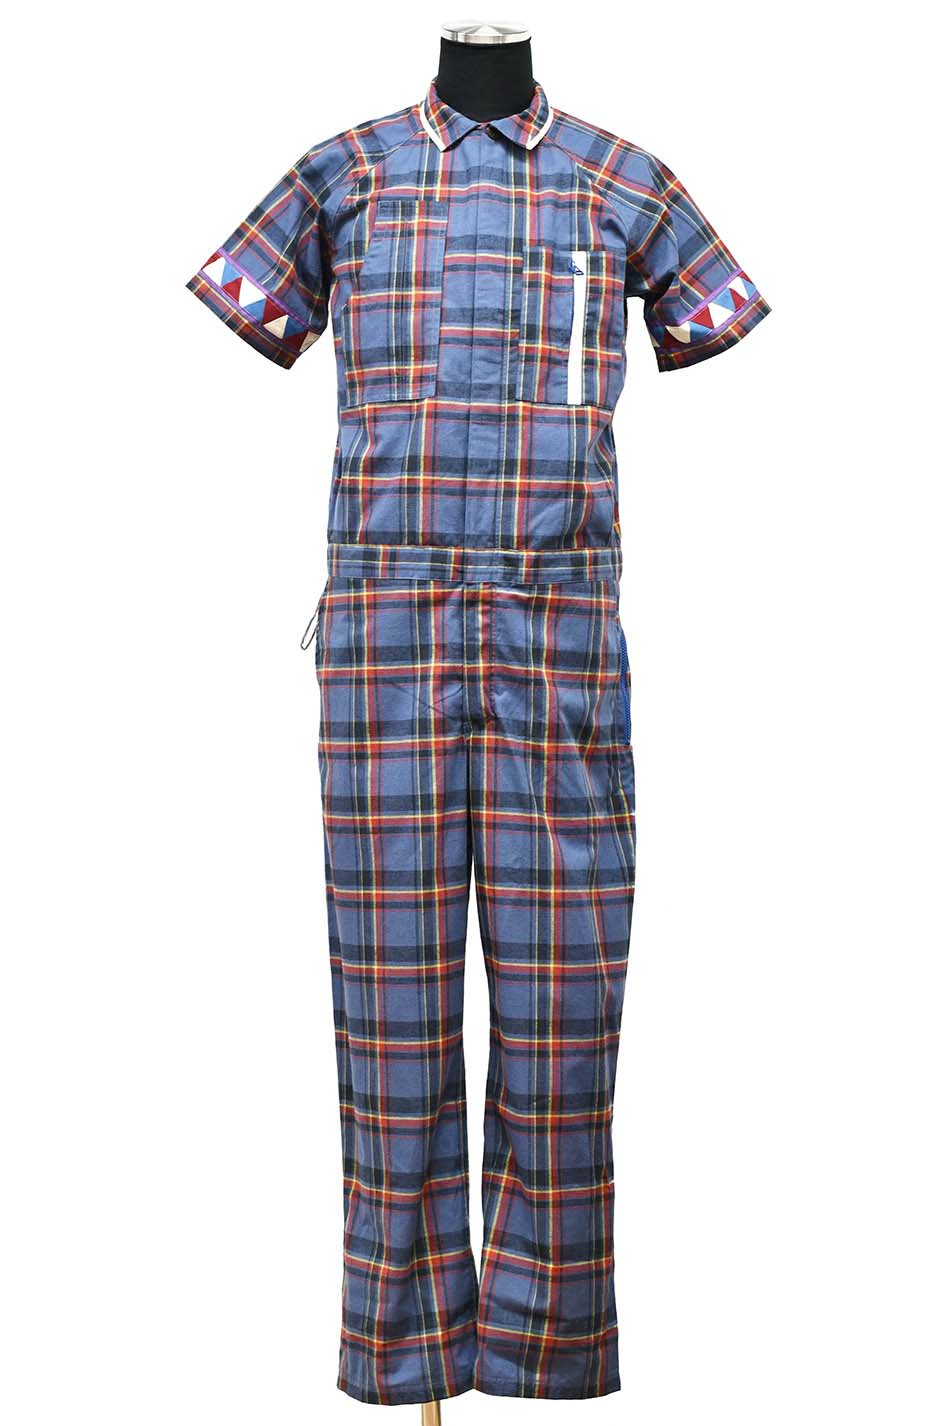 40%off! ARIGATO FAKKYU - アリガトファッキュ S/S OVERALL / NAVY